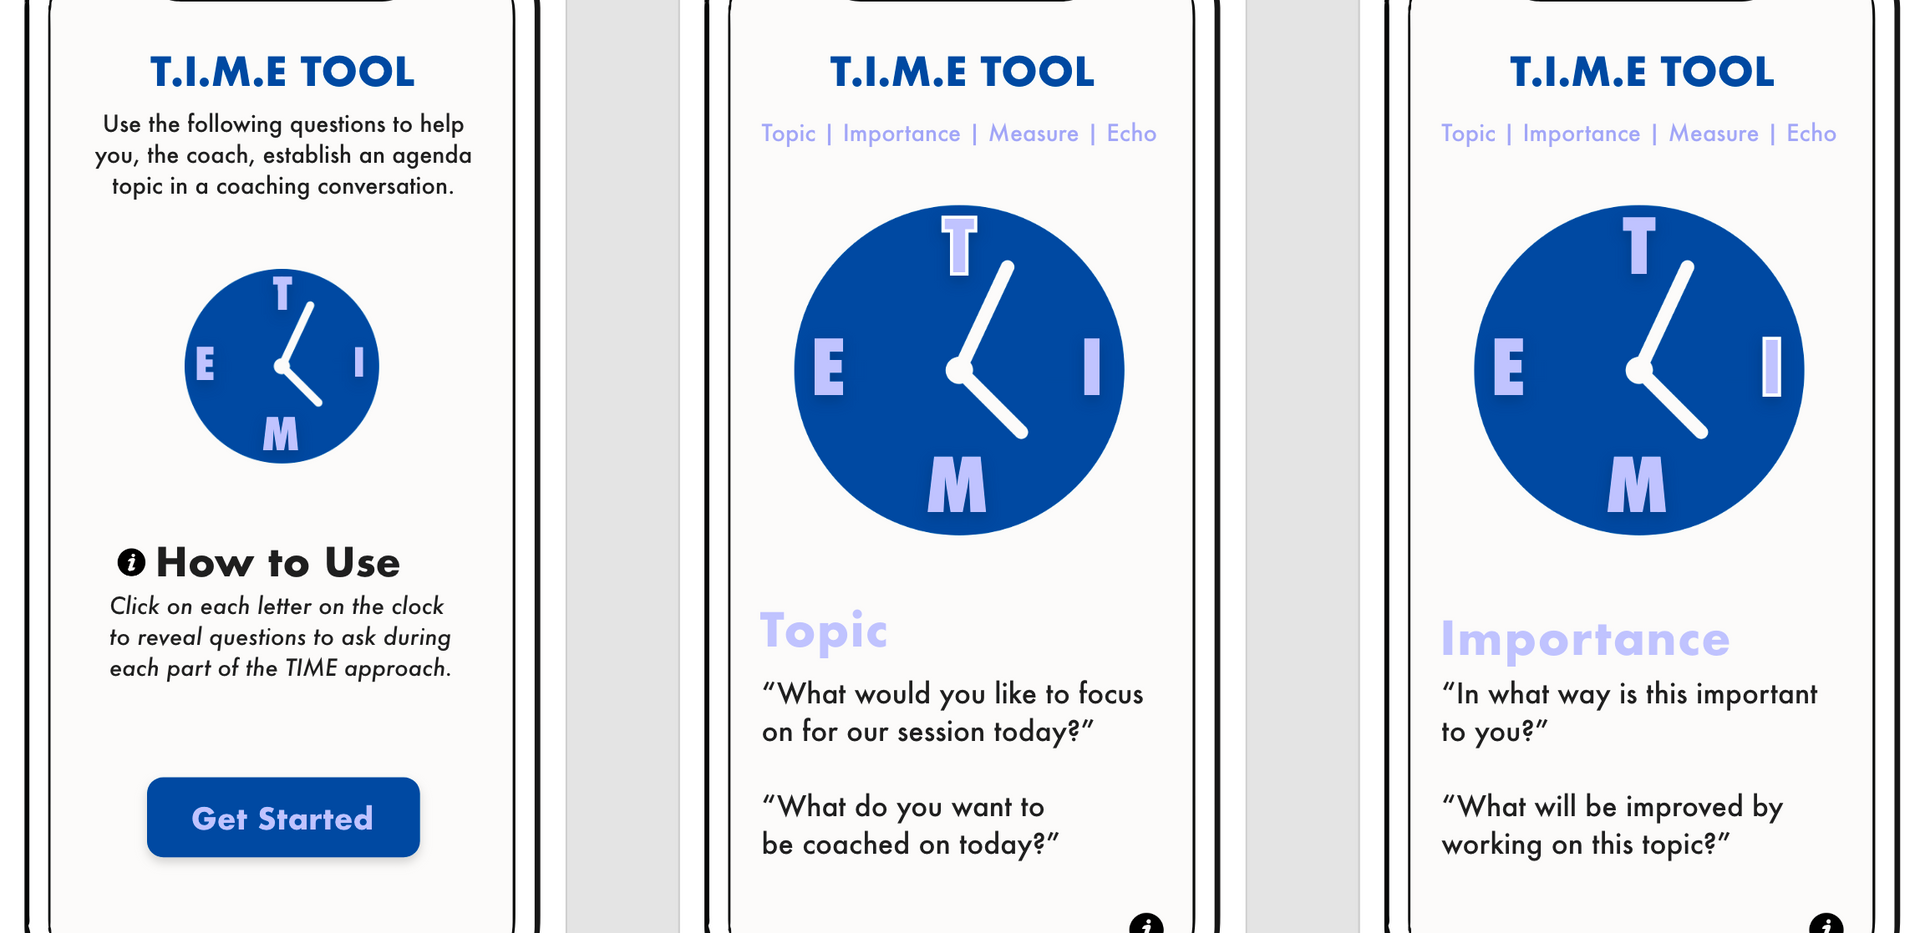 Learner uses this digital reference as a guide to conduct more focused meetings.